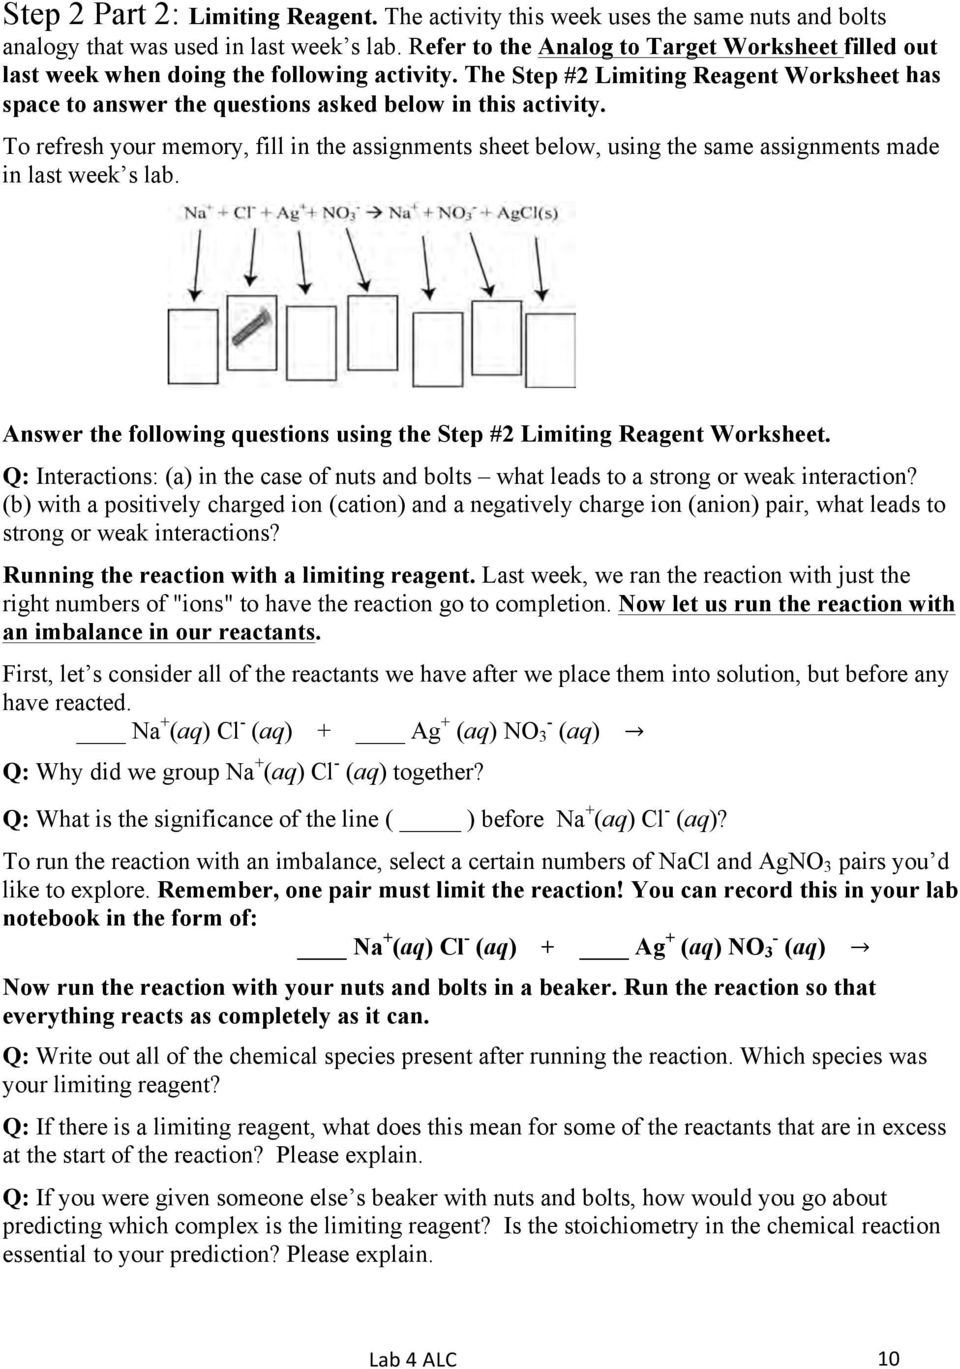 Limiting Reagent Using An Analogy And A Learning Cycle Approach Pdf